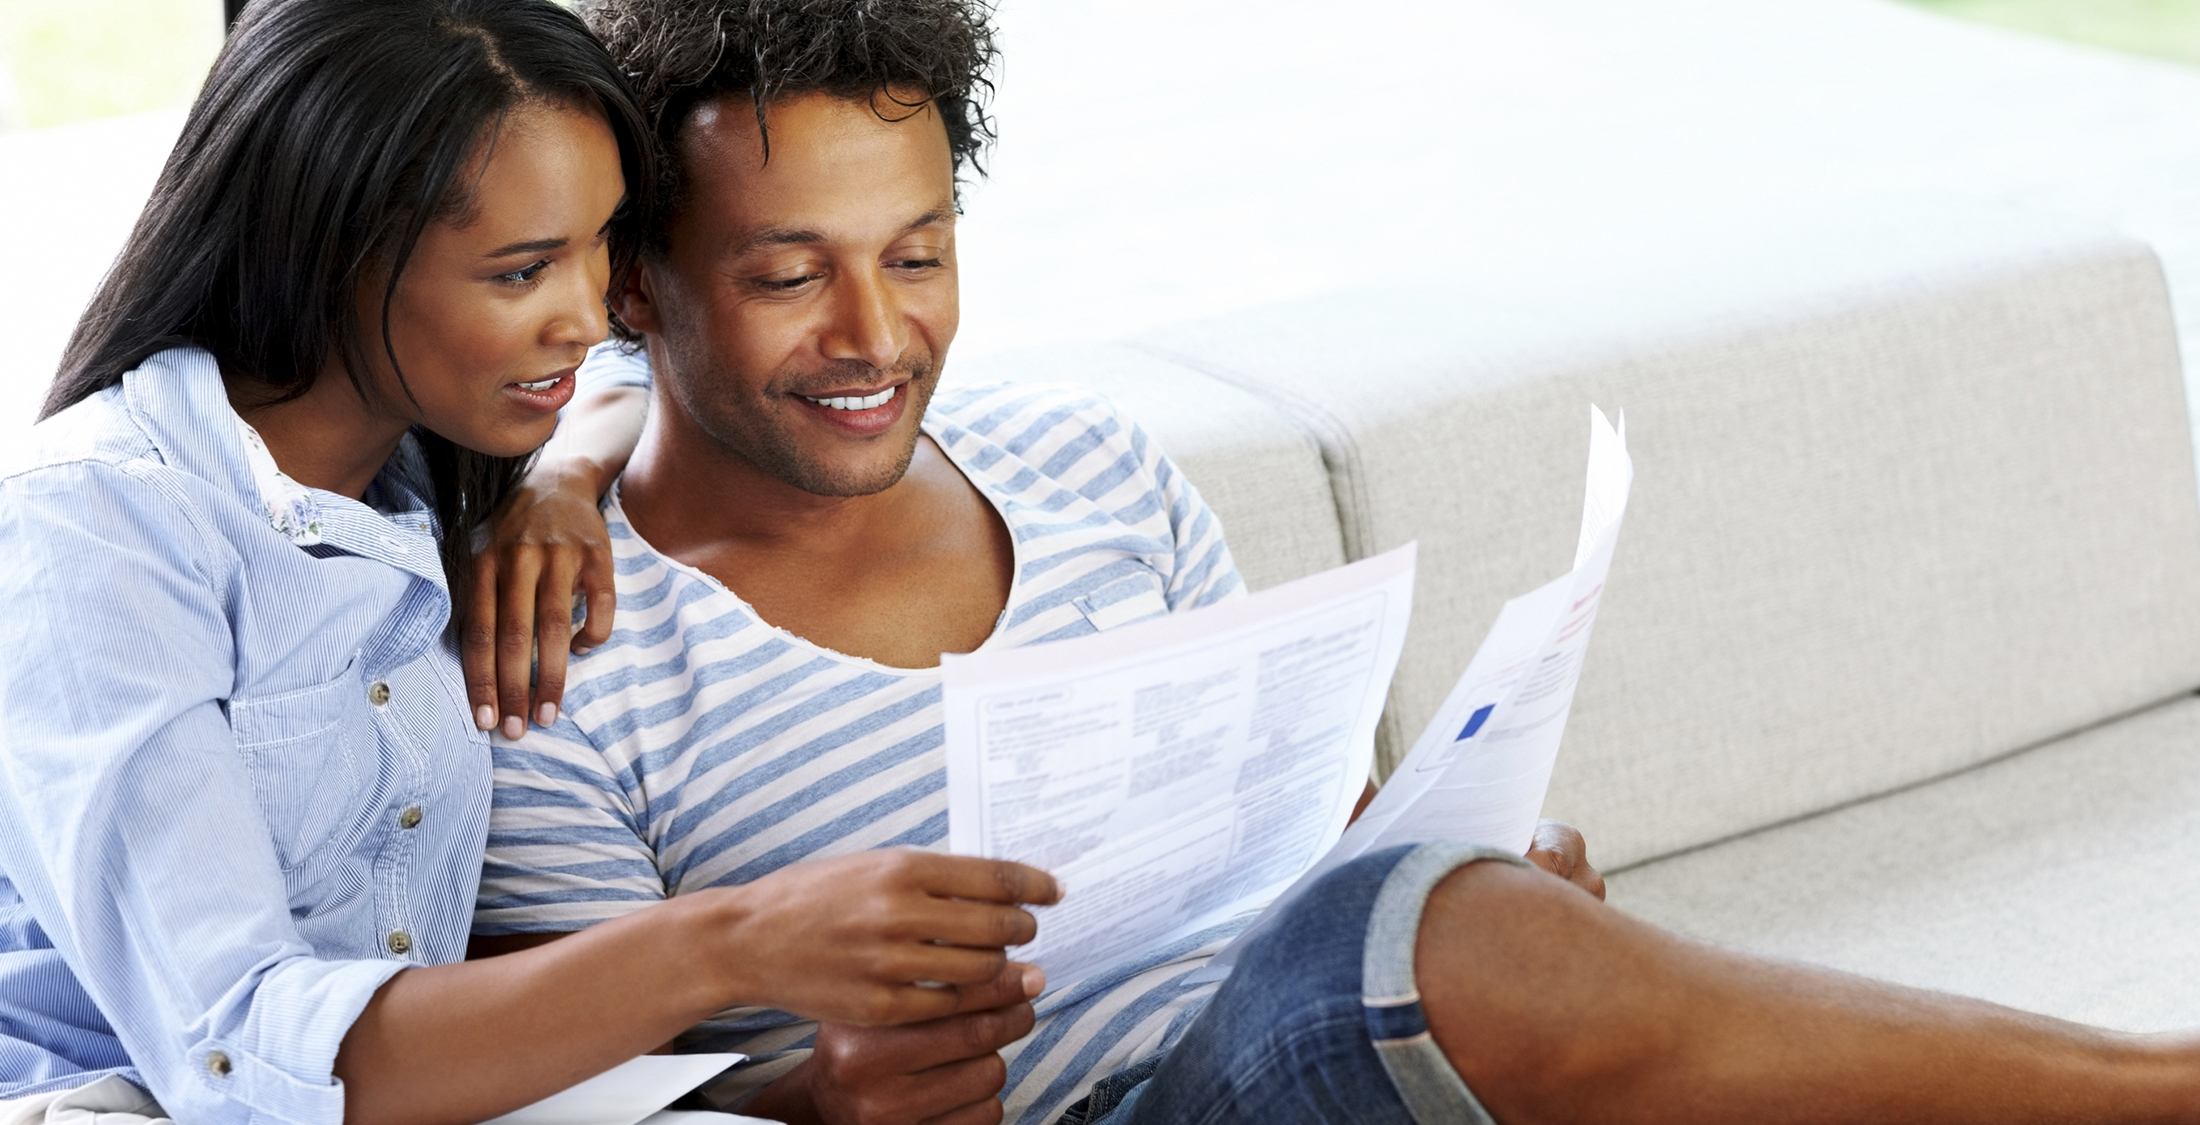 Young couple sitting on sofa reading a financial bill at home